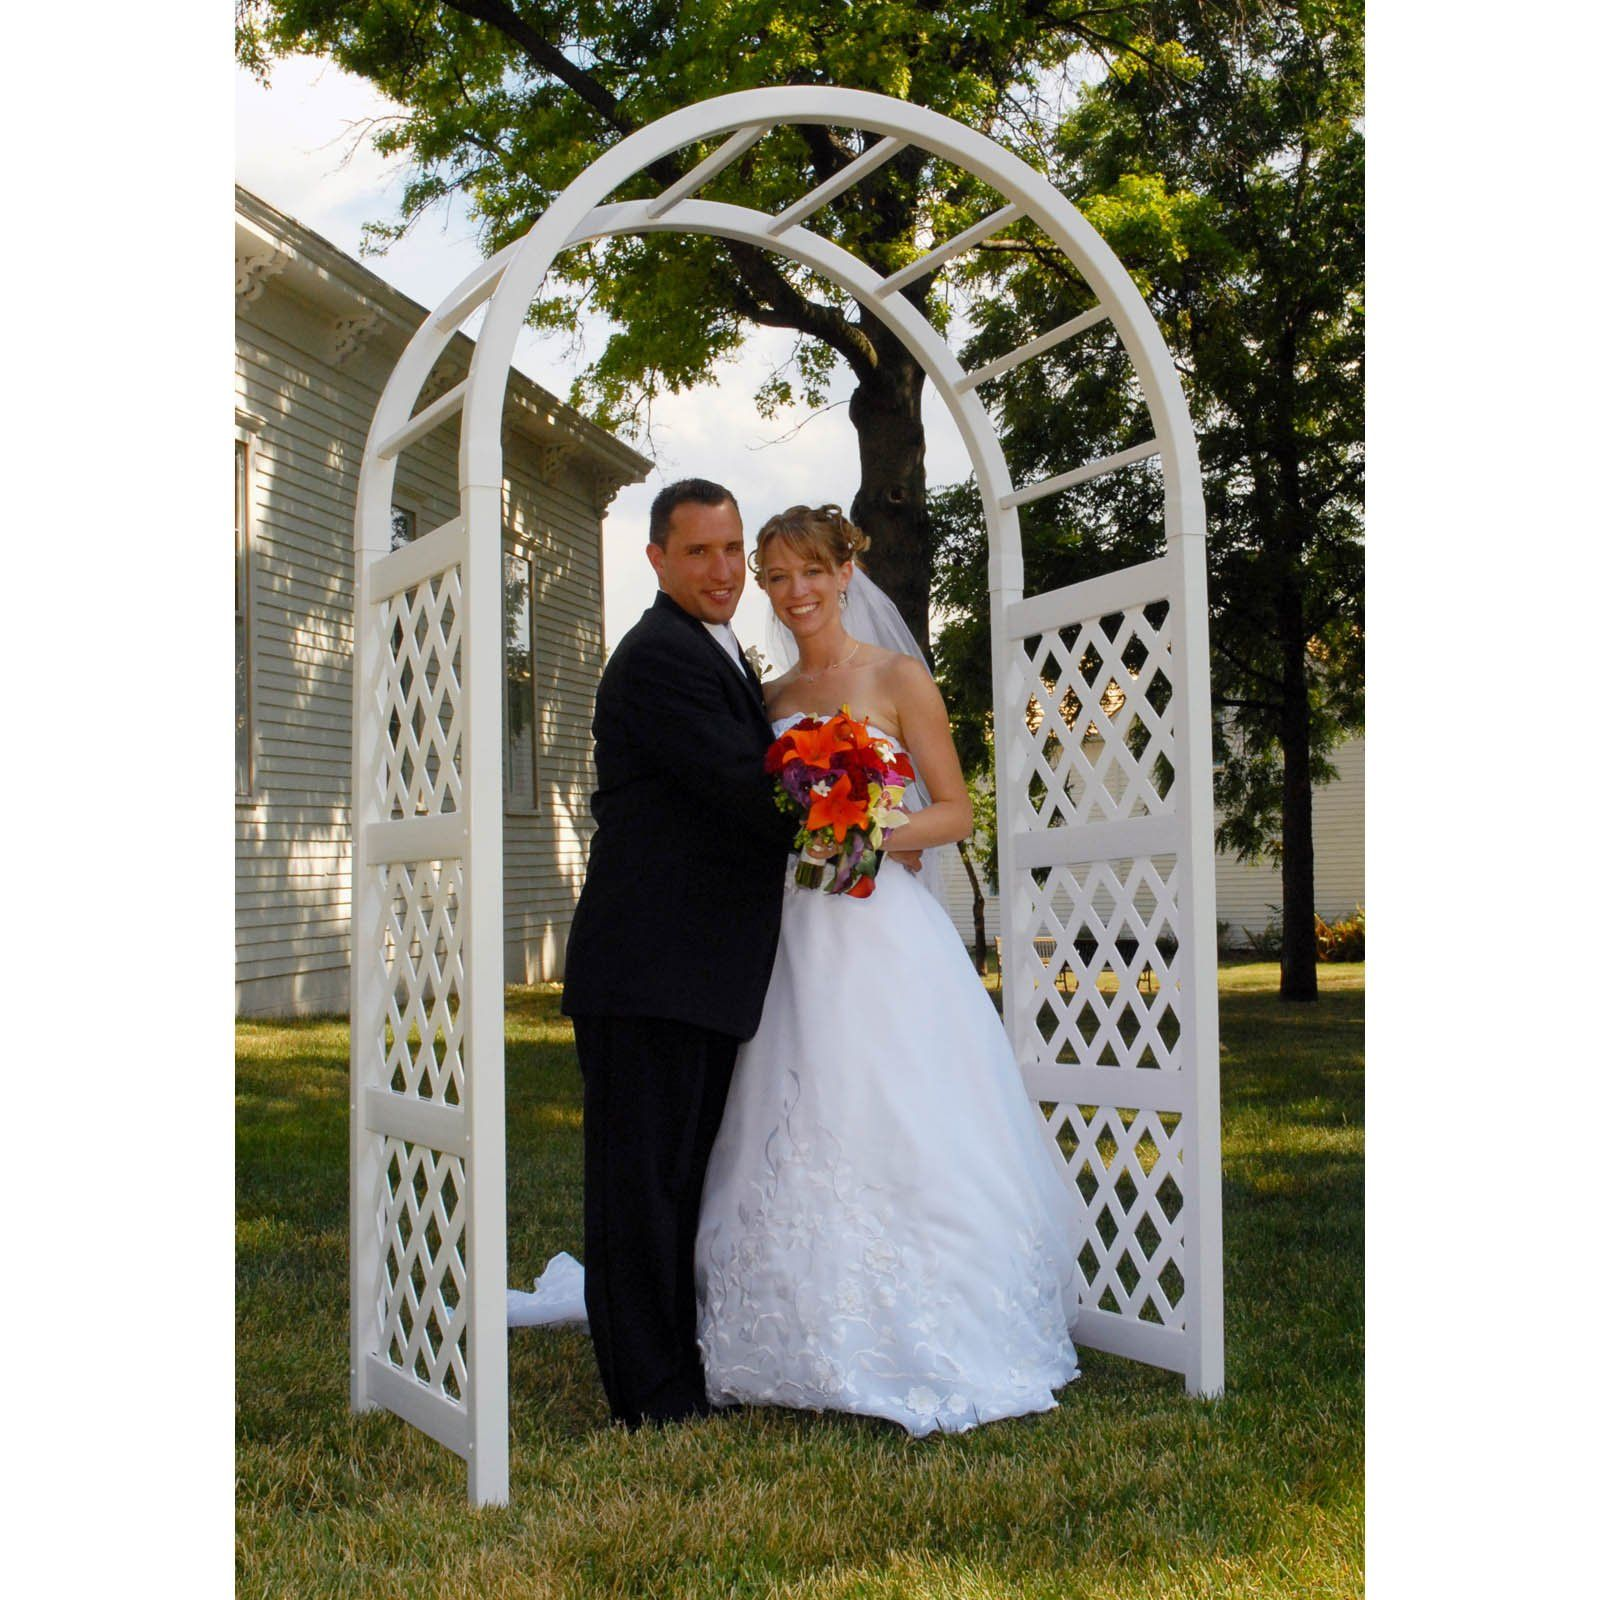 Wooden Arches You Can Make For Wedding